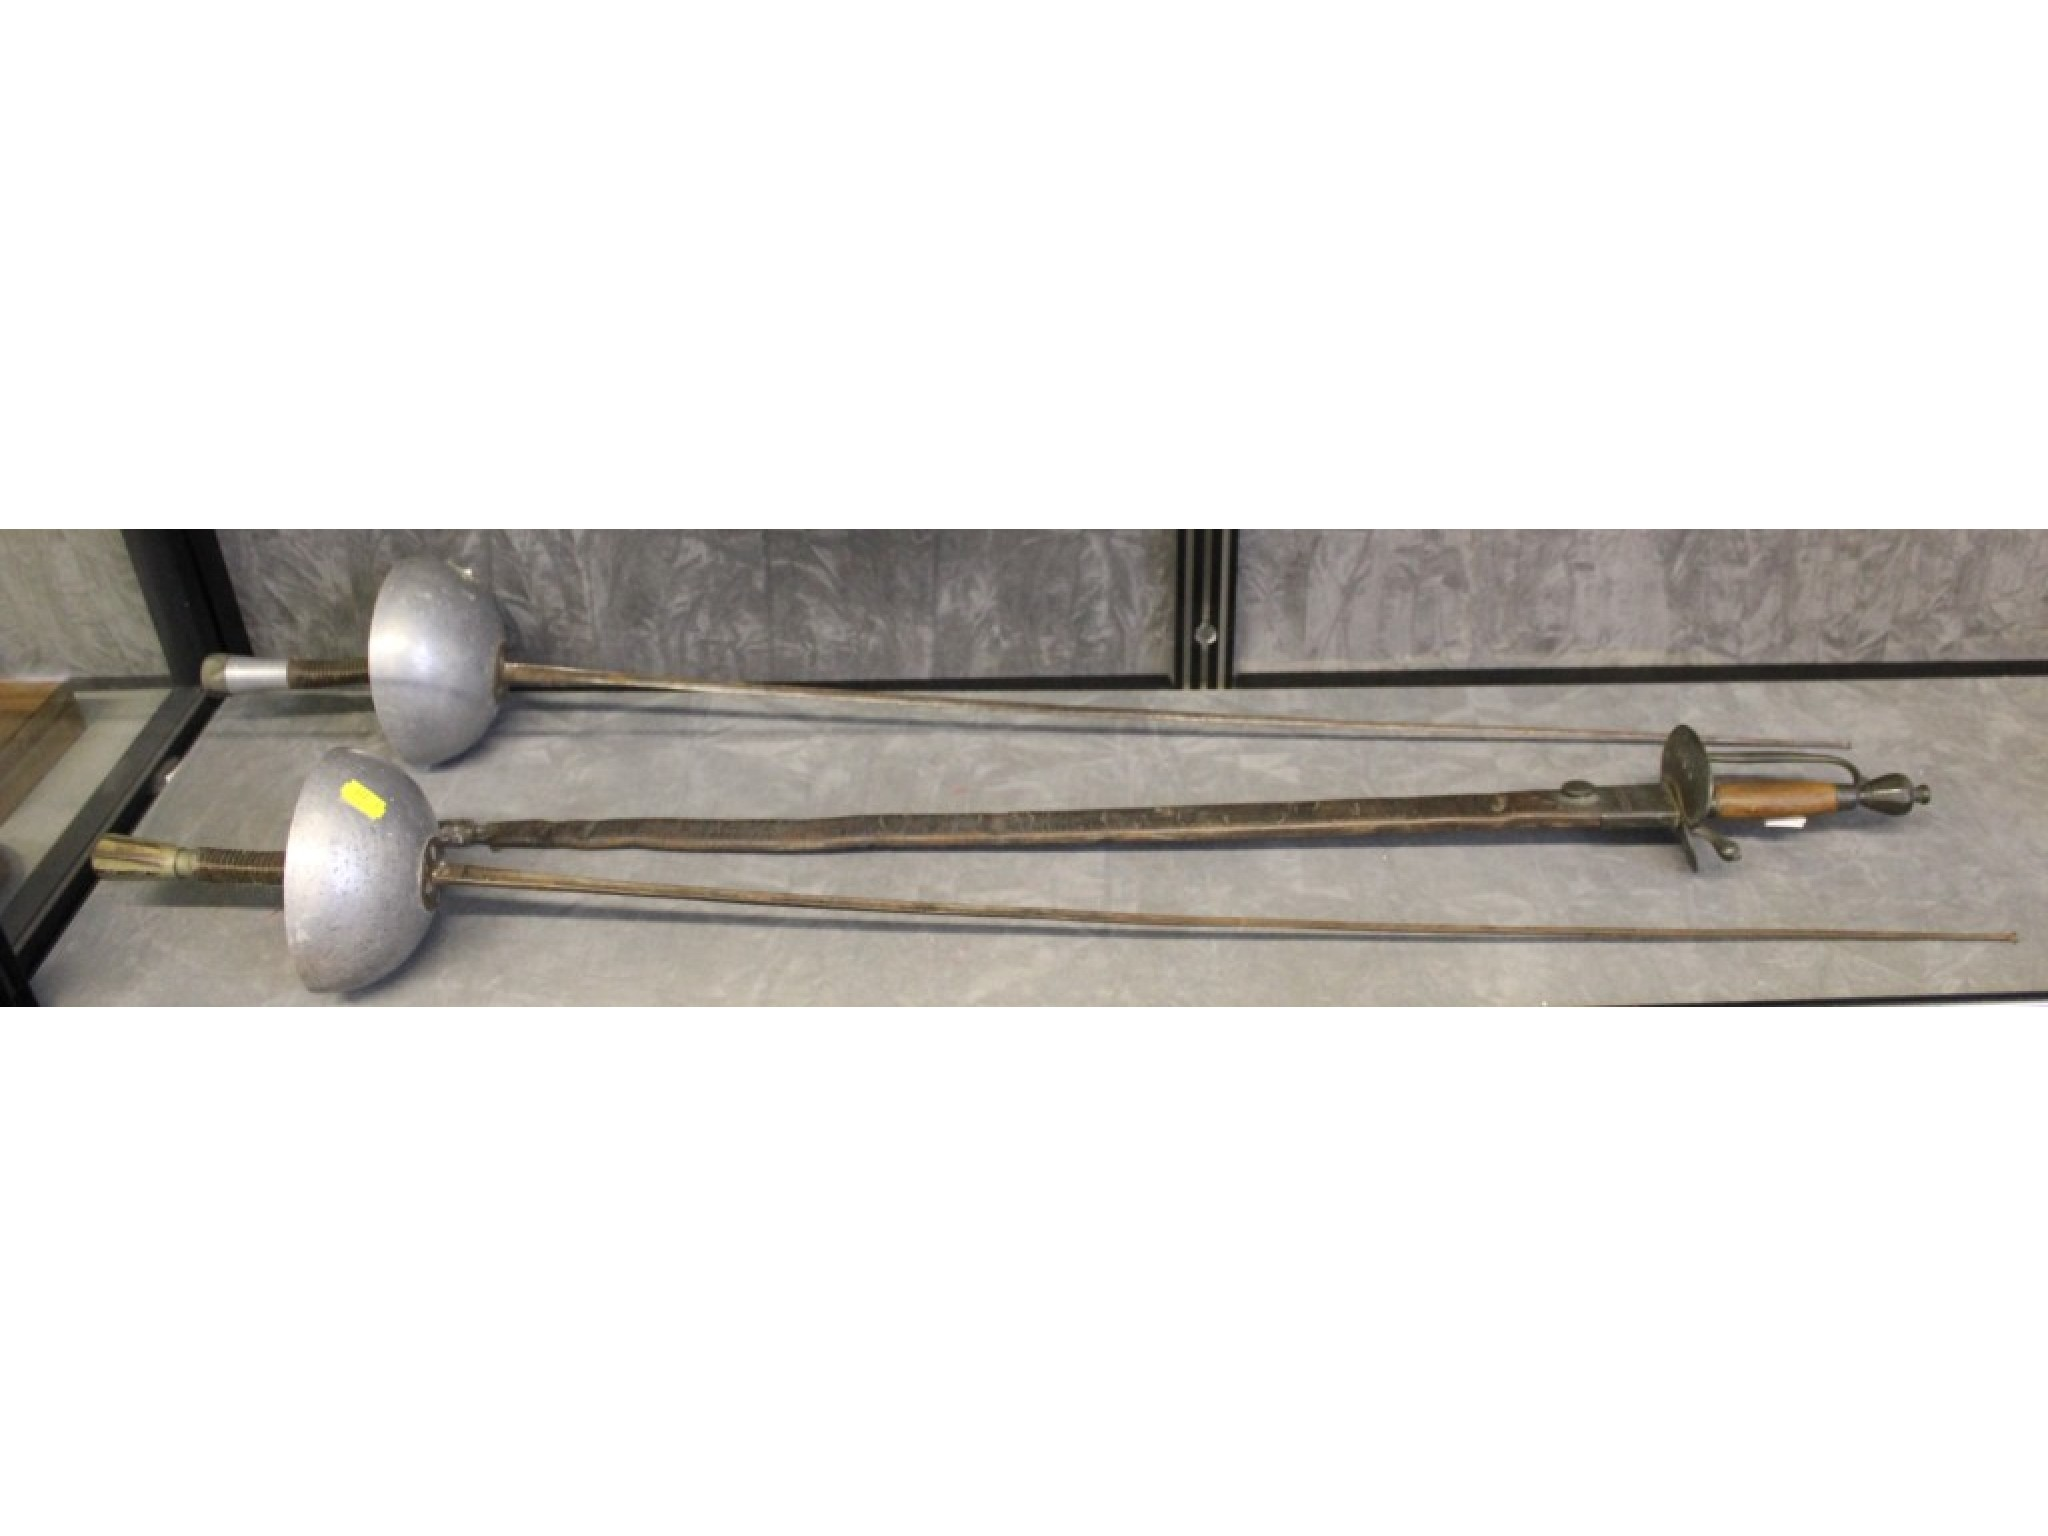 A Naval type sword, in leather scabbard, and two fencing Épée swords